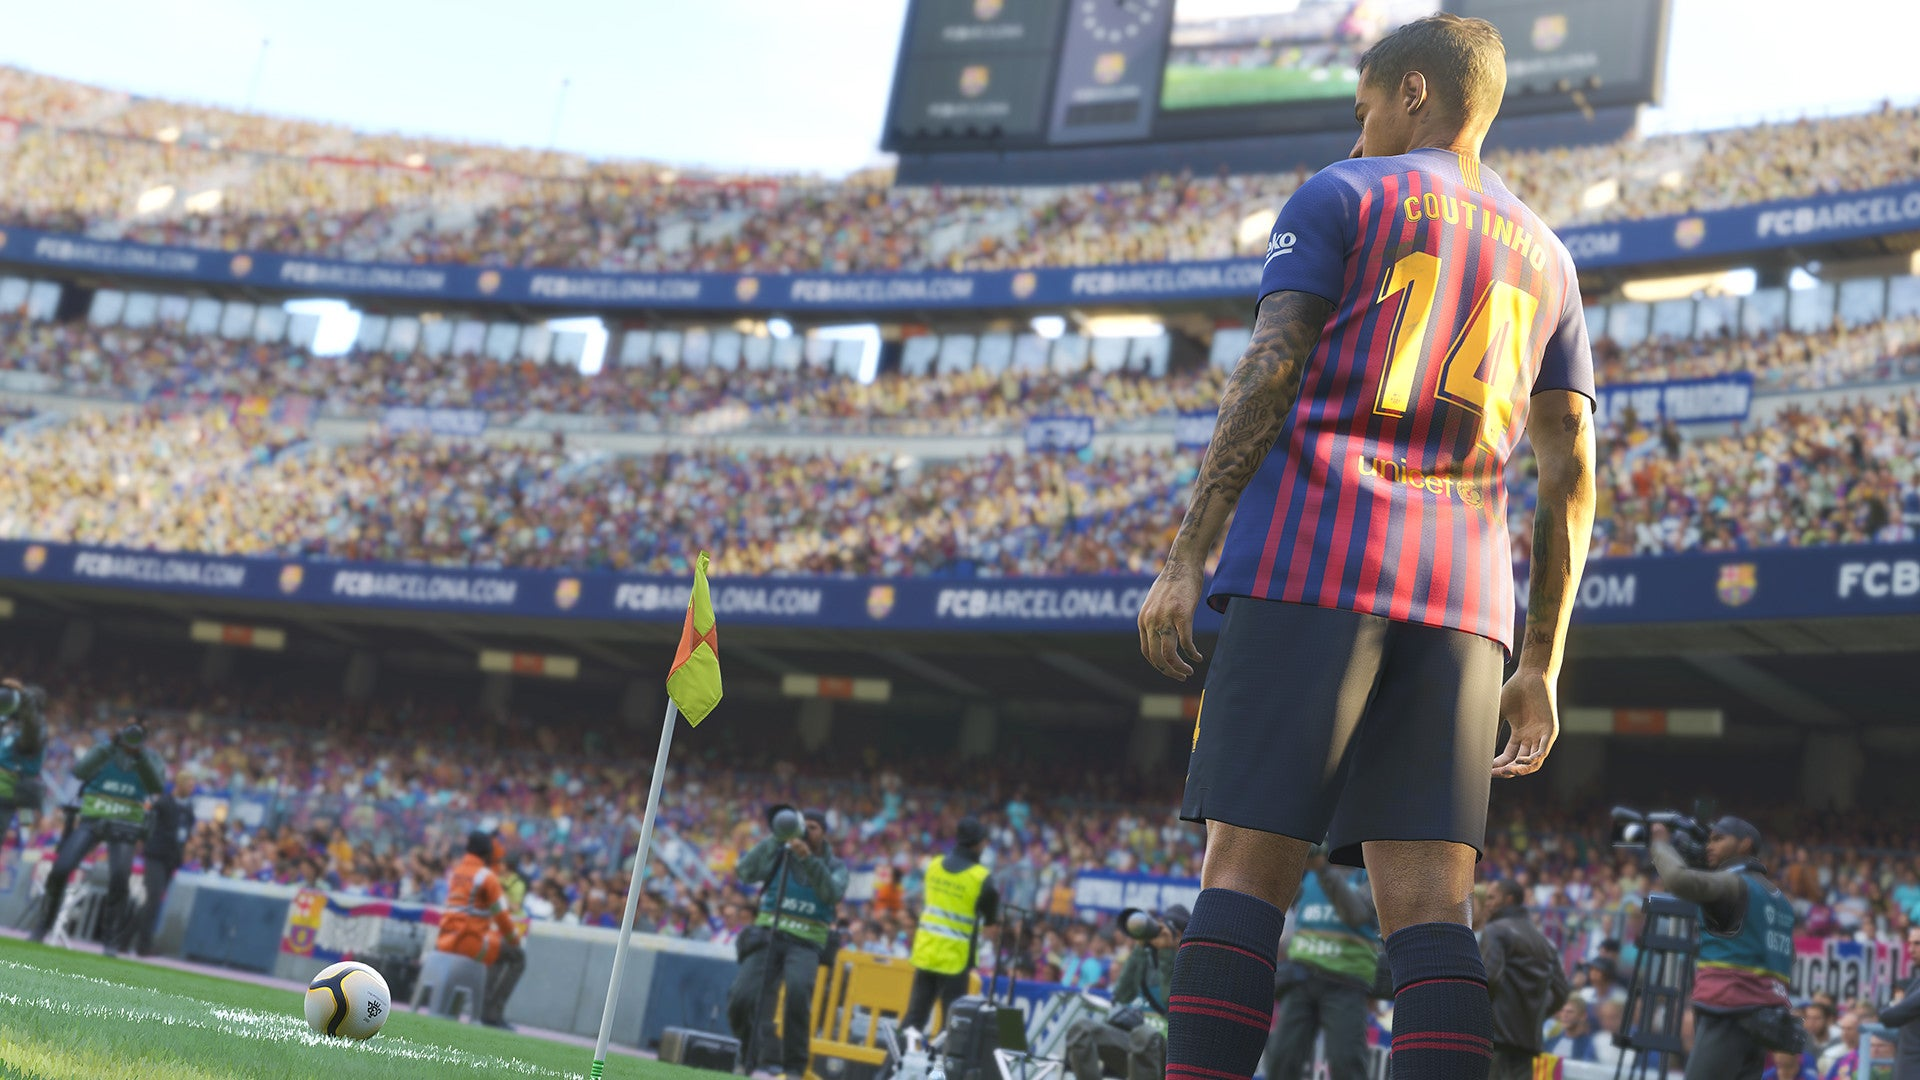 Pro Evolution Soccer 2019 And Horizon Chase Turbo Are July's